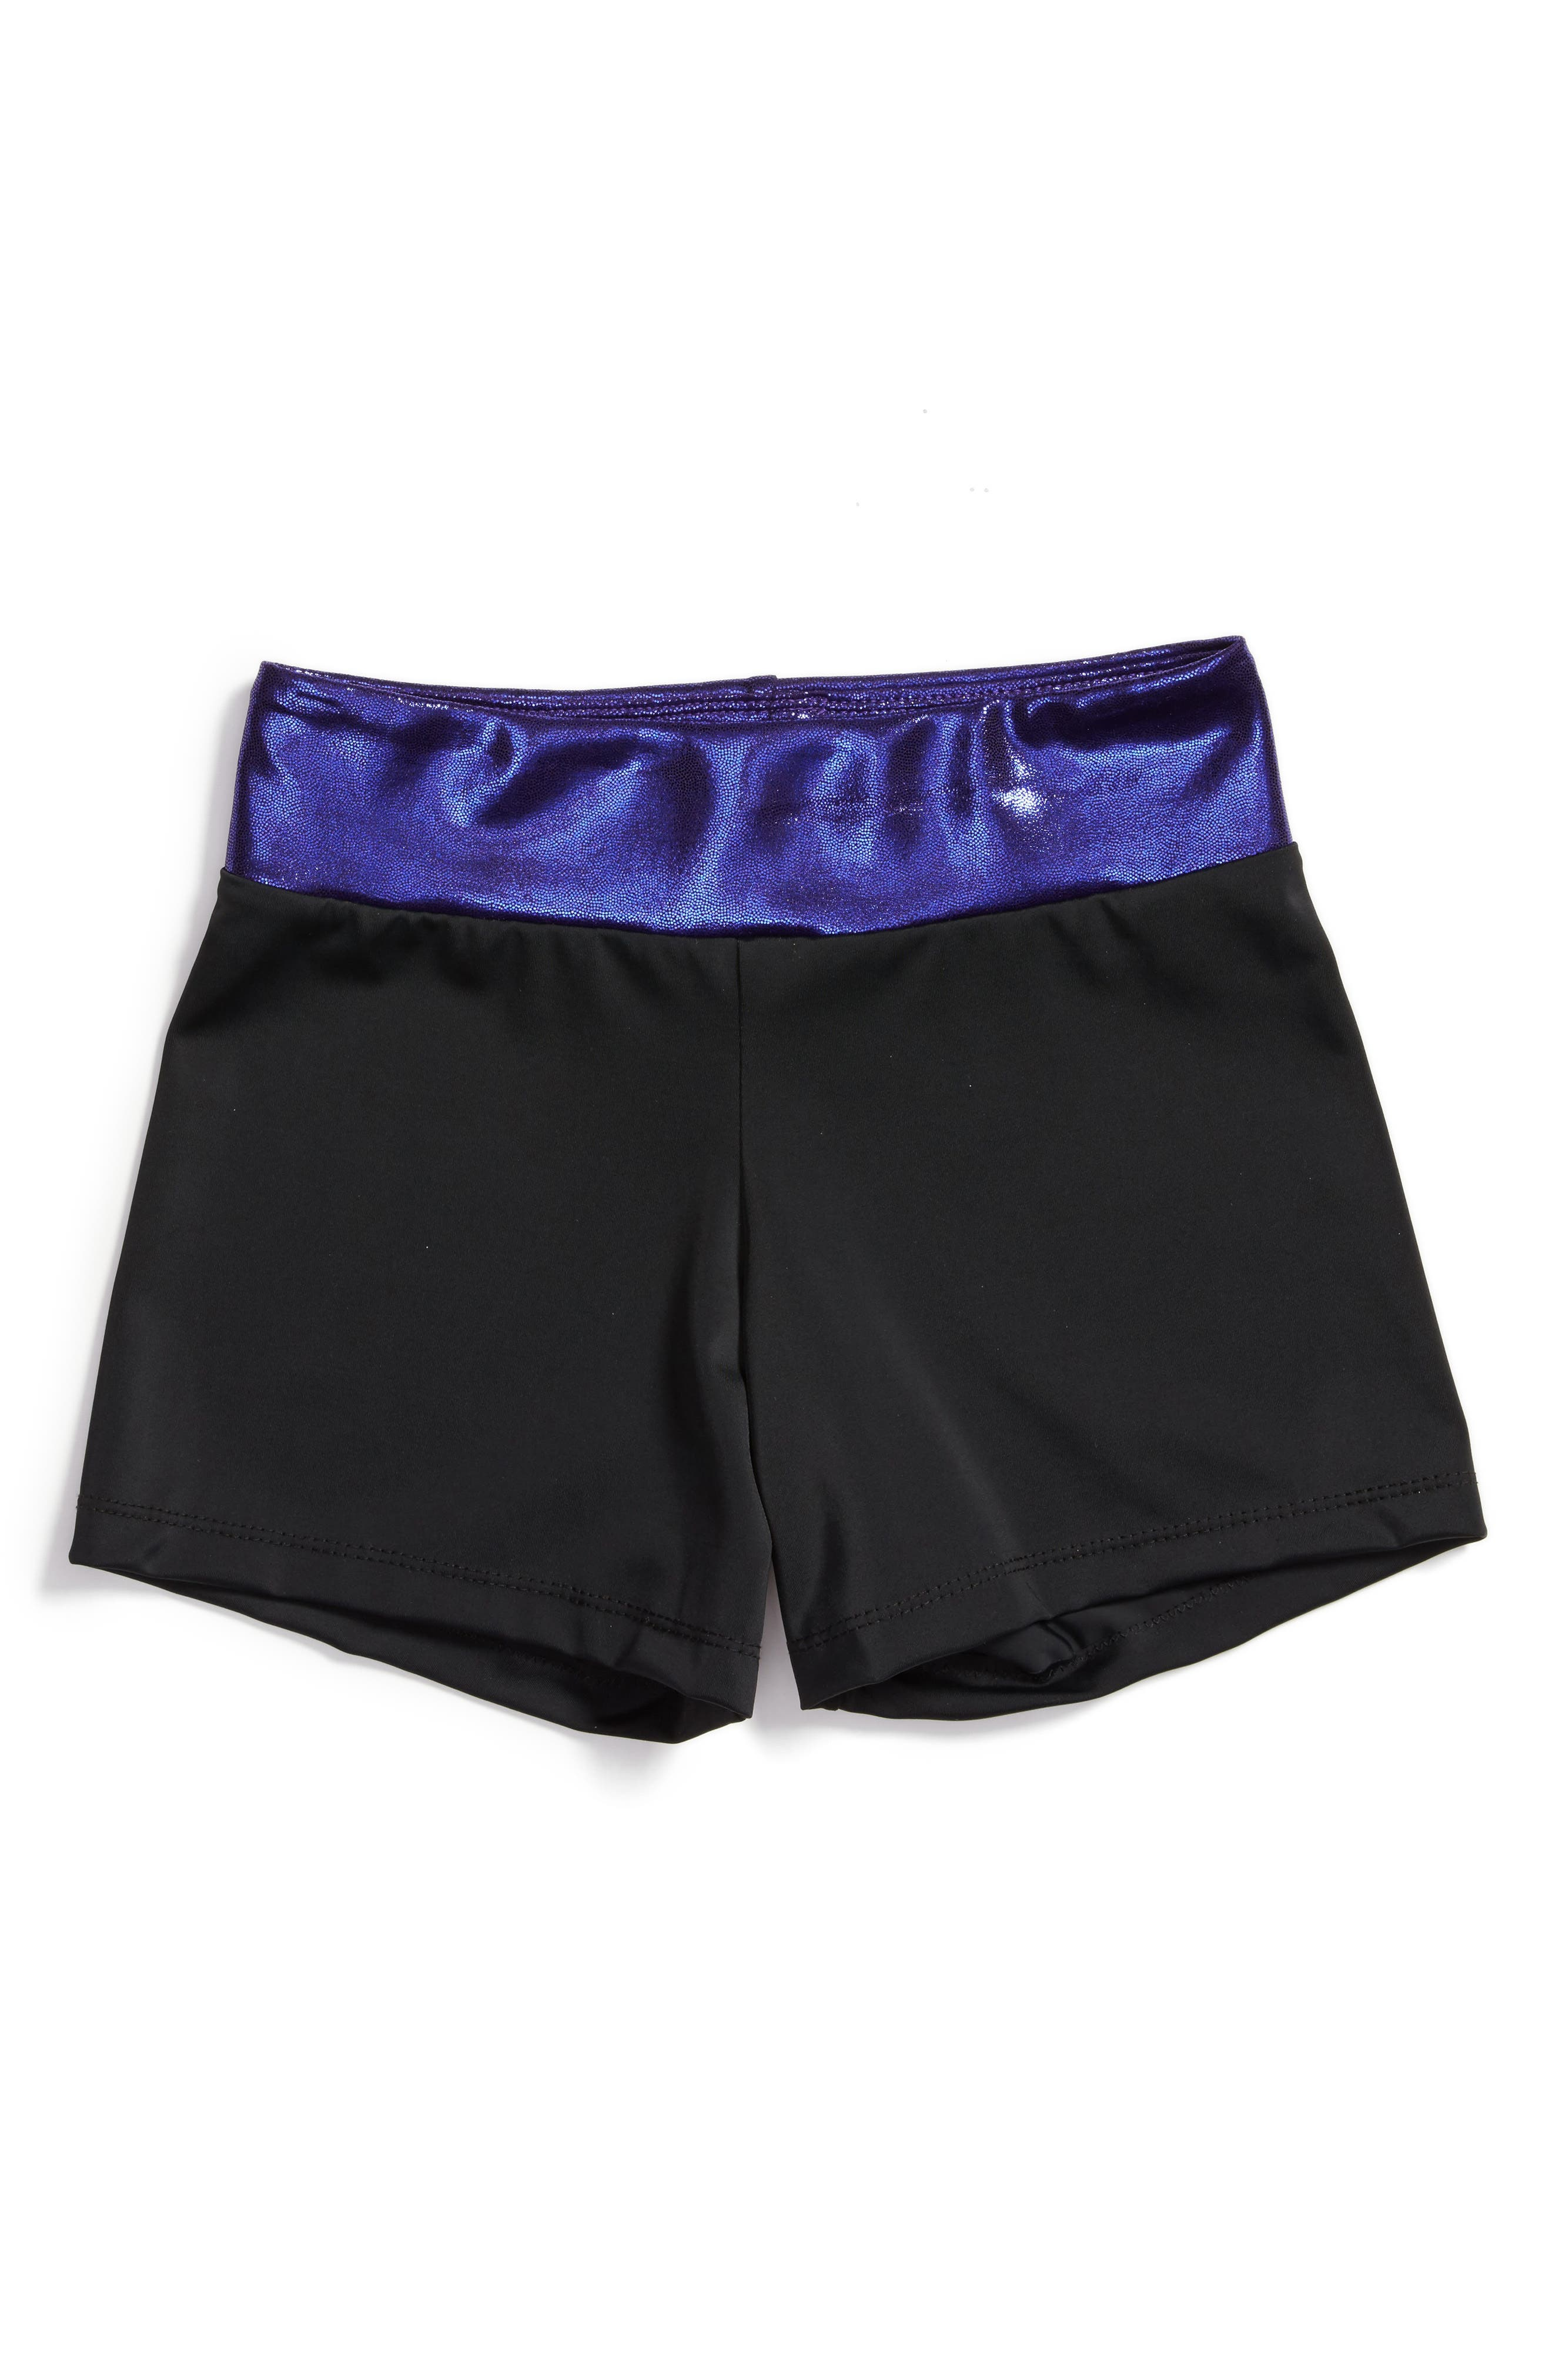 Space Girl Stretch Shorts,                             Main thumbnail 1, color,                             001